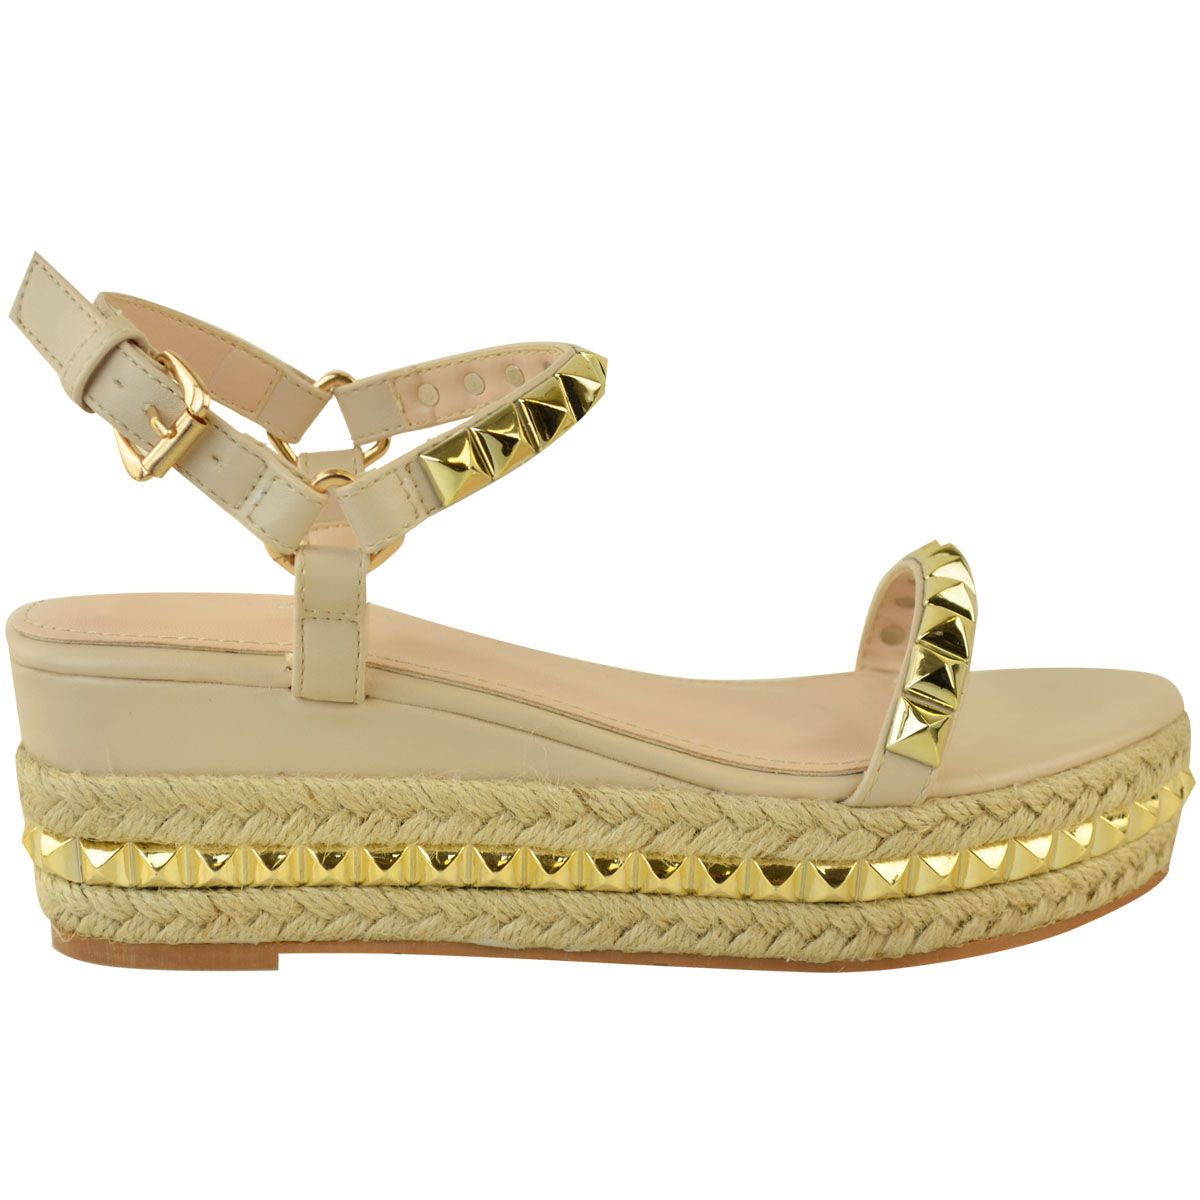 Ladies-Womens-Studded-Low-Wedge-Espadrille-Sandals-Platform-Rose-Gold-Shoes-Size thumbnail 19